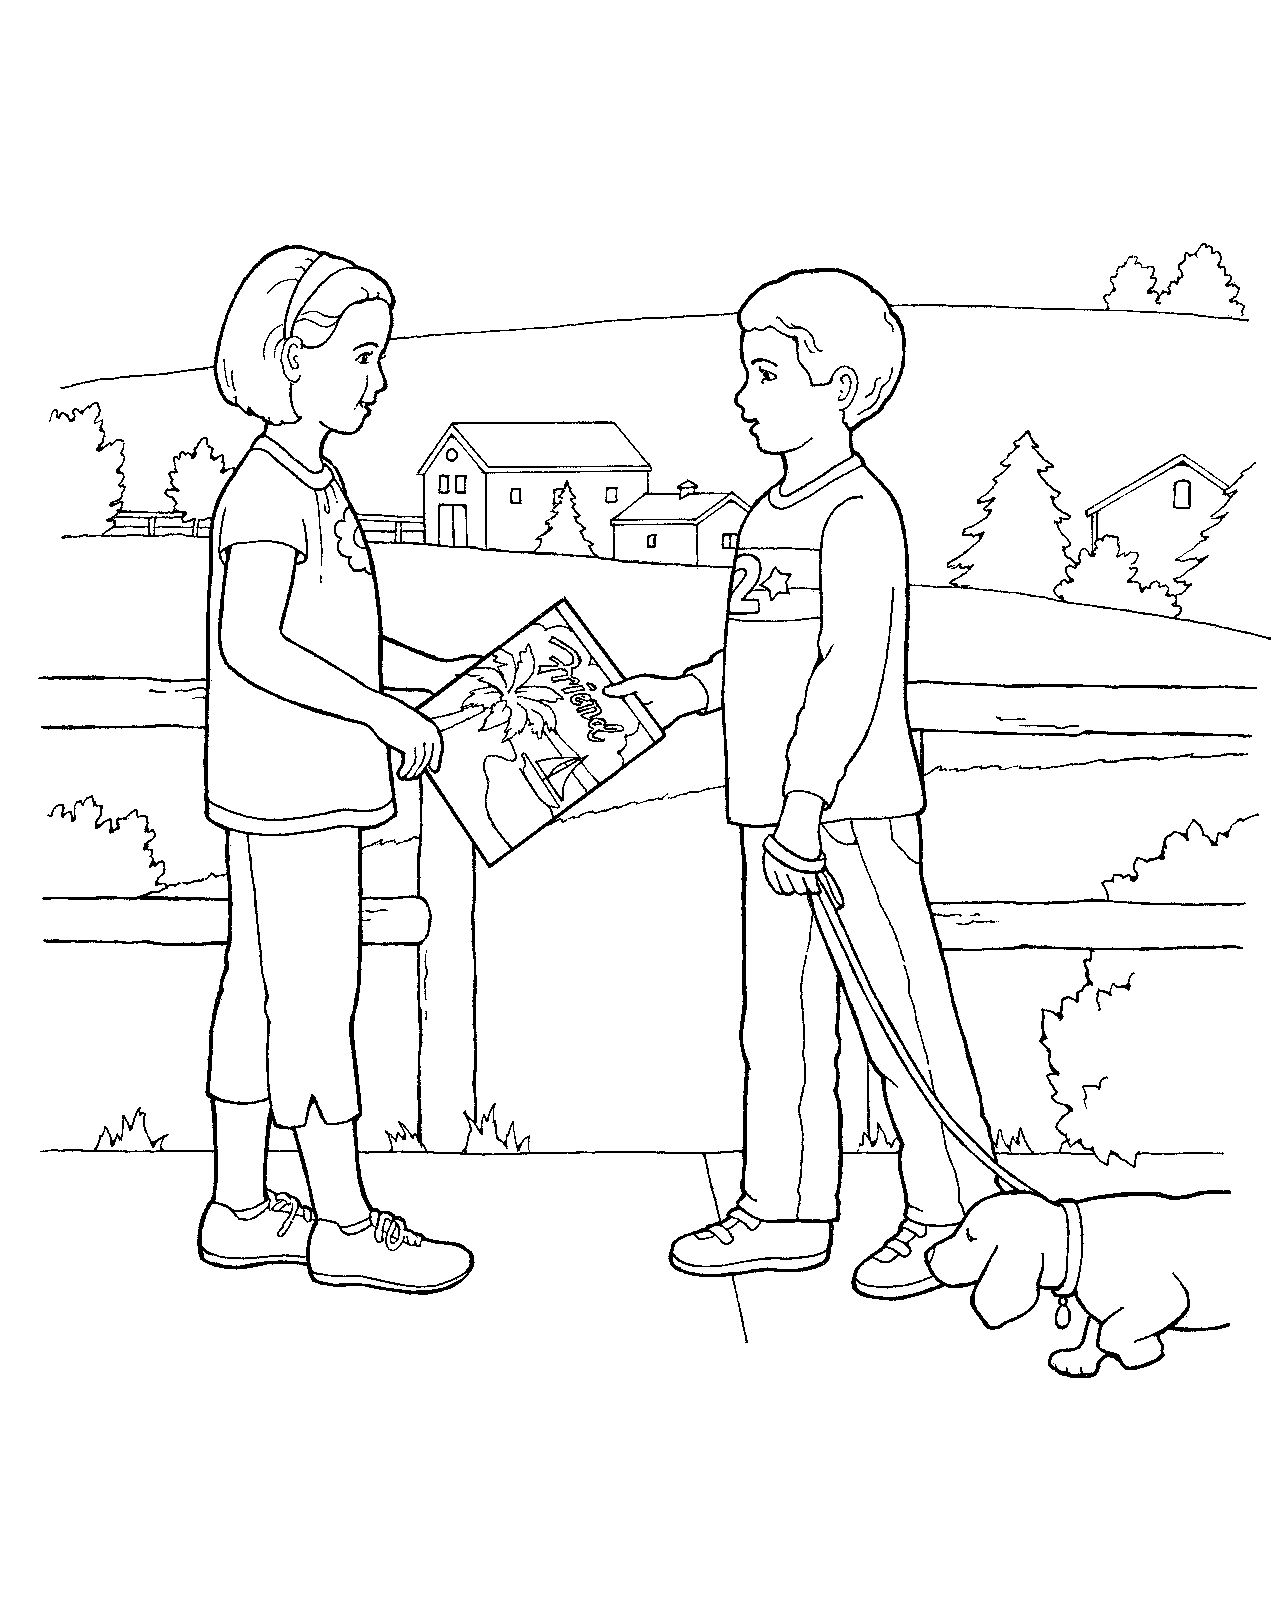 Primary coloring sheet from lds.org. For more LDS coloring ...